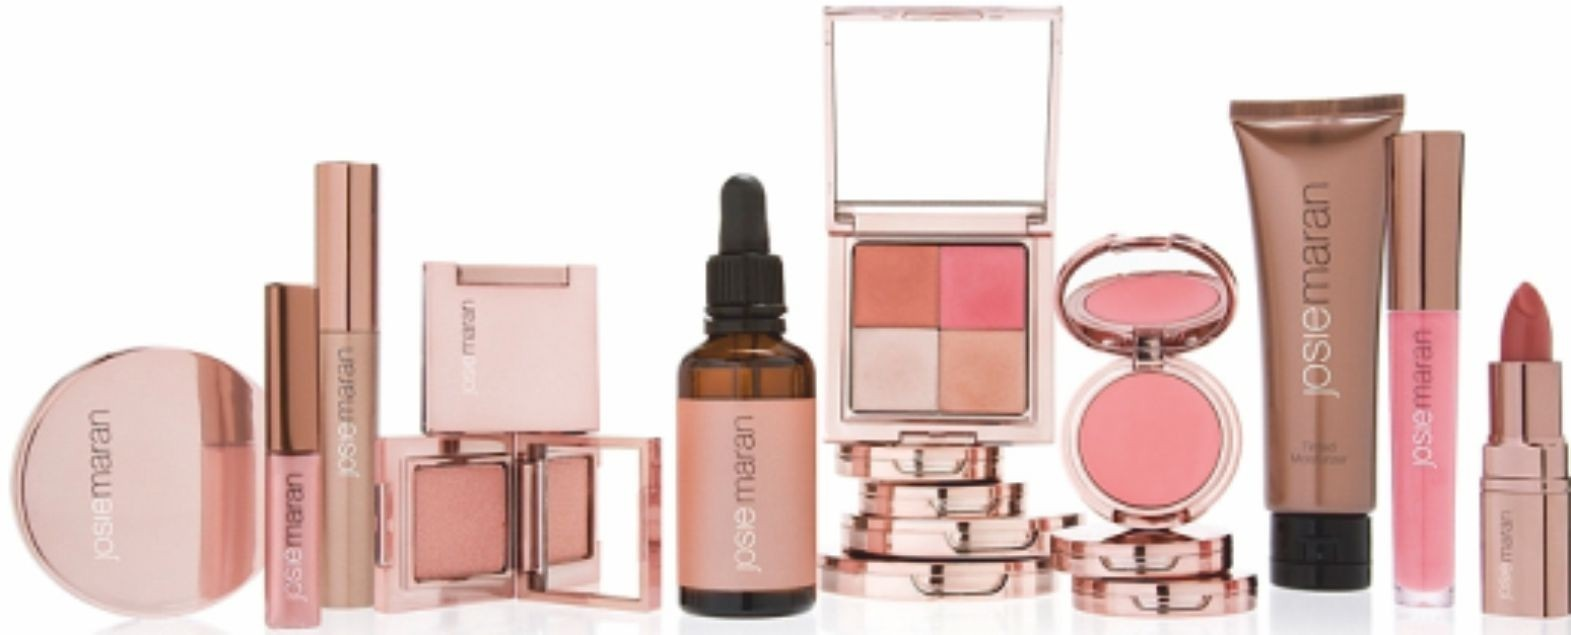 A lot of times cosmetics are labeled incorrectly. So what you're putting on your skin isn't really as safe as the bottle says.